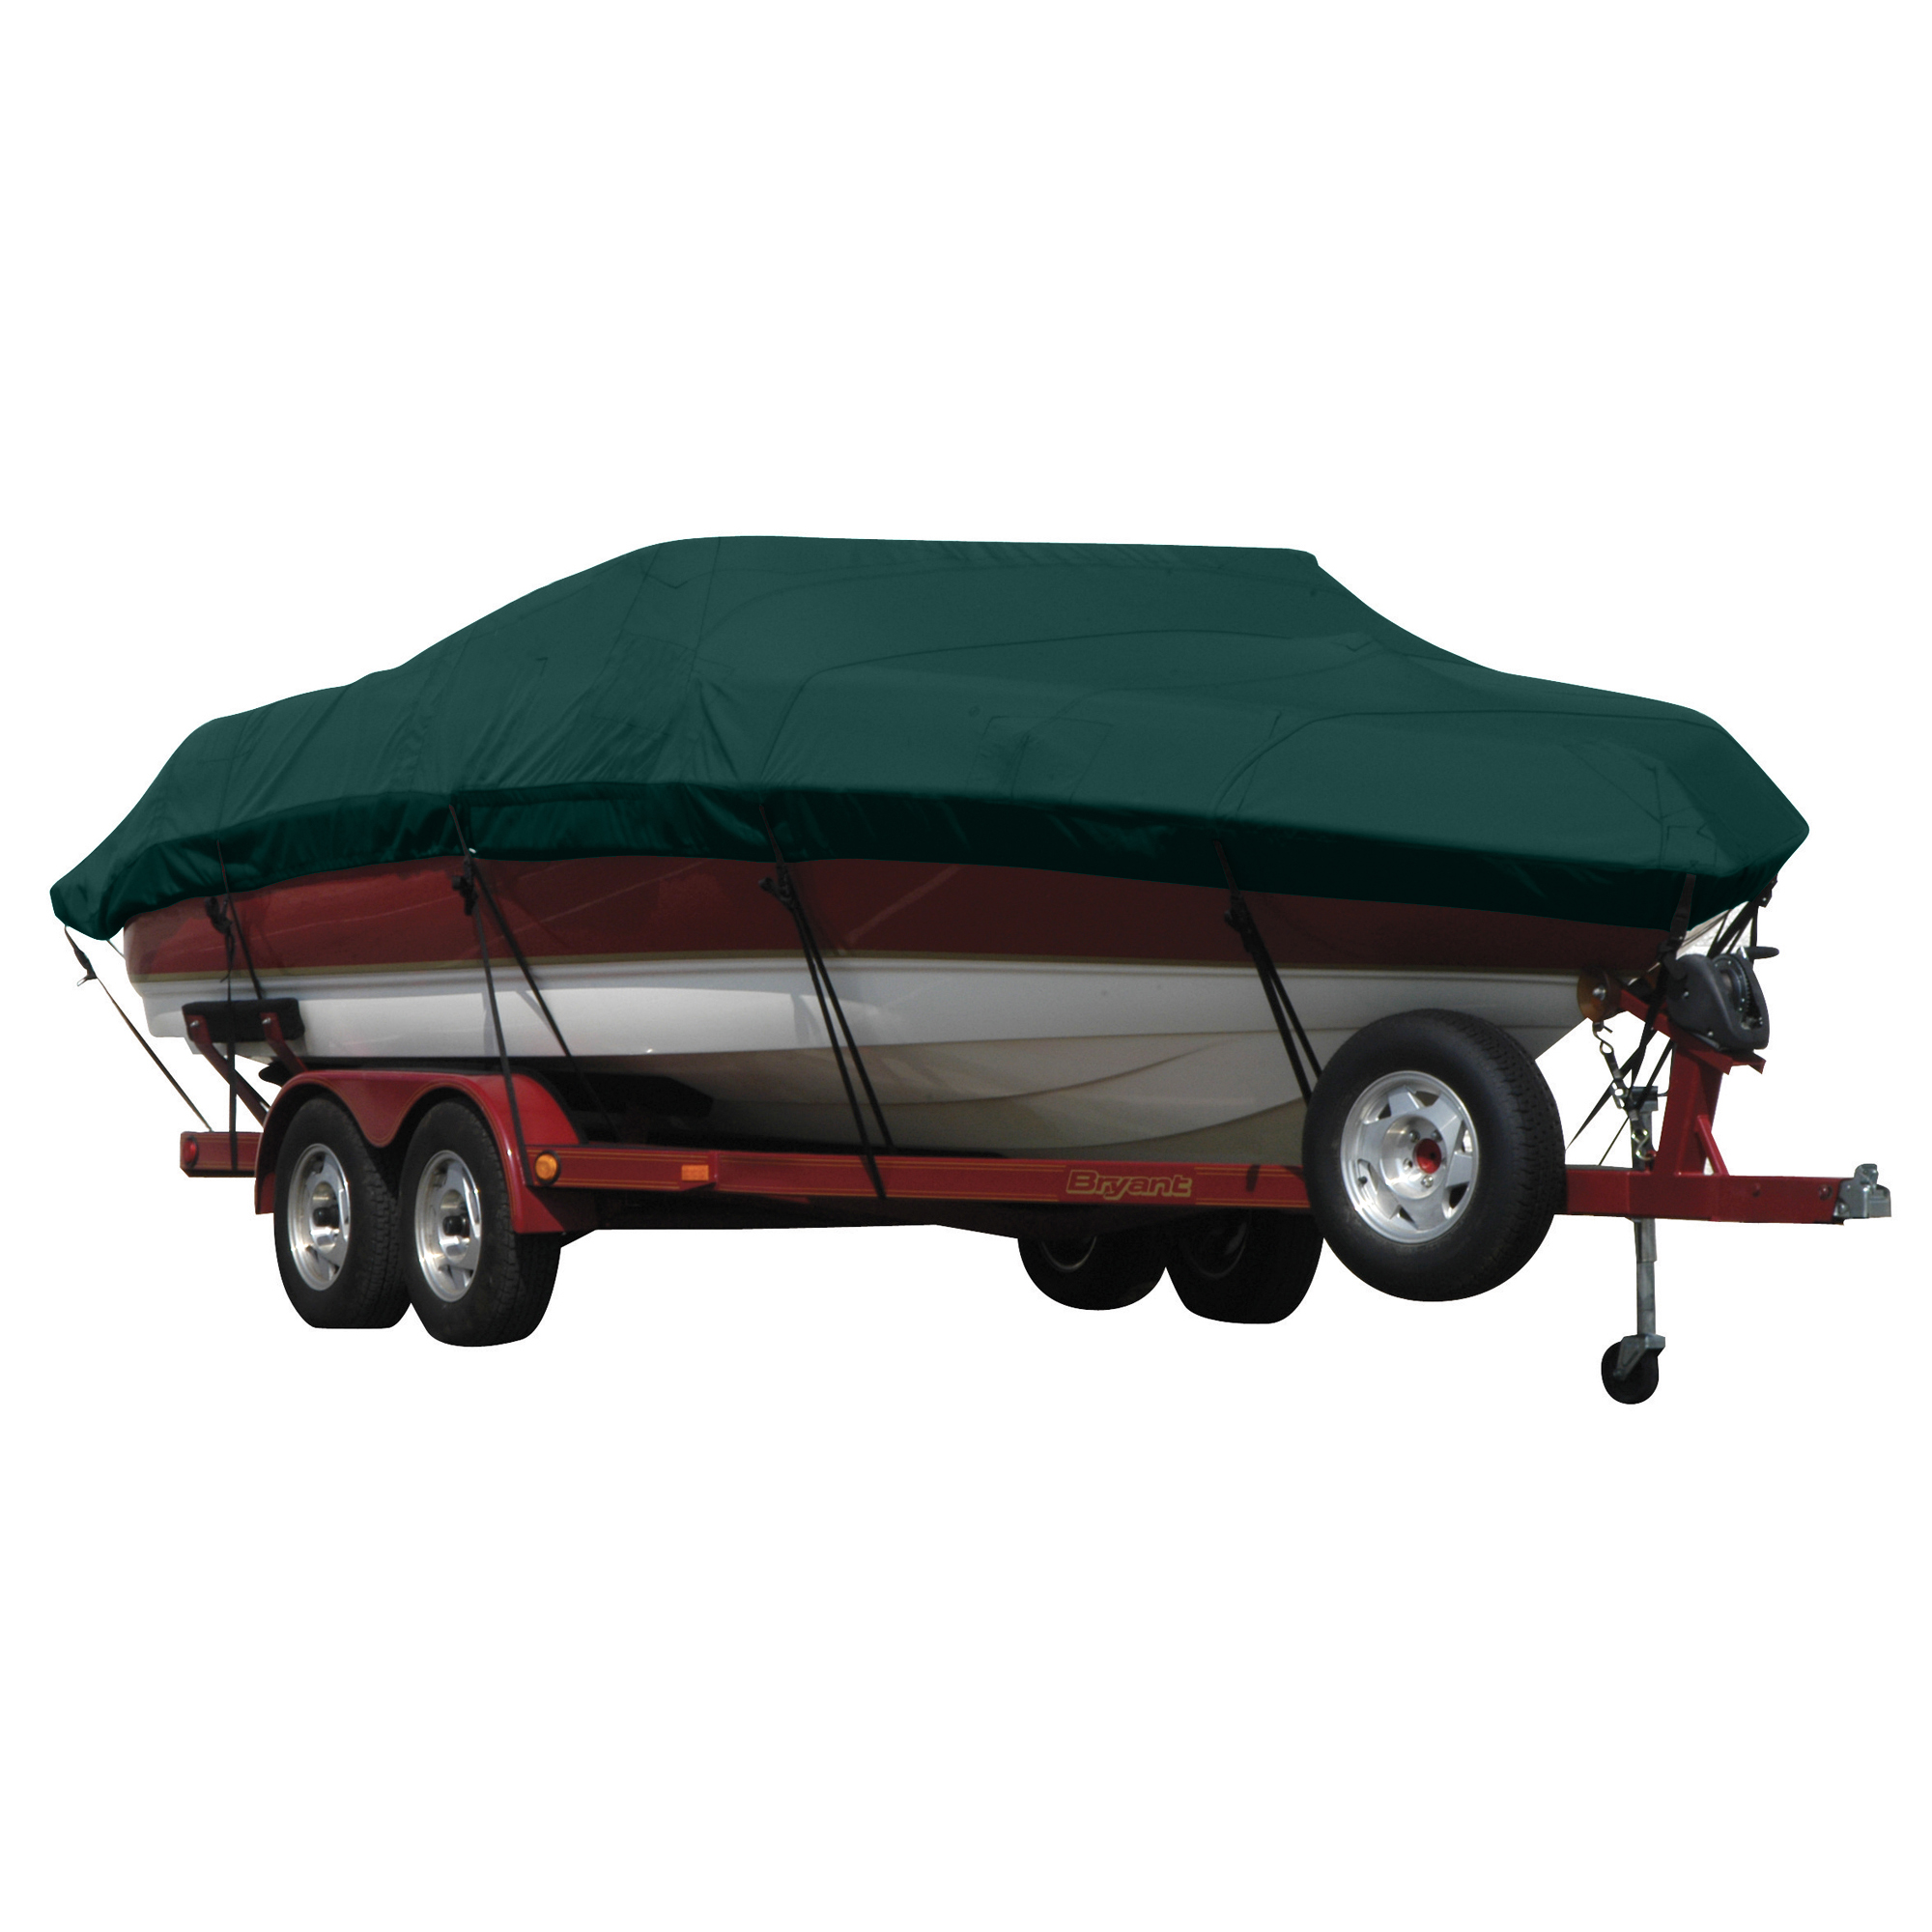 Exact Fit Covermate Sunbrella Boat Cover for Princecraft Super Pro 176 Super Pro 176 Fish N Promenade W/Ski Rope Guard O/B. Forest Green